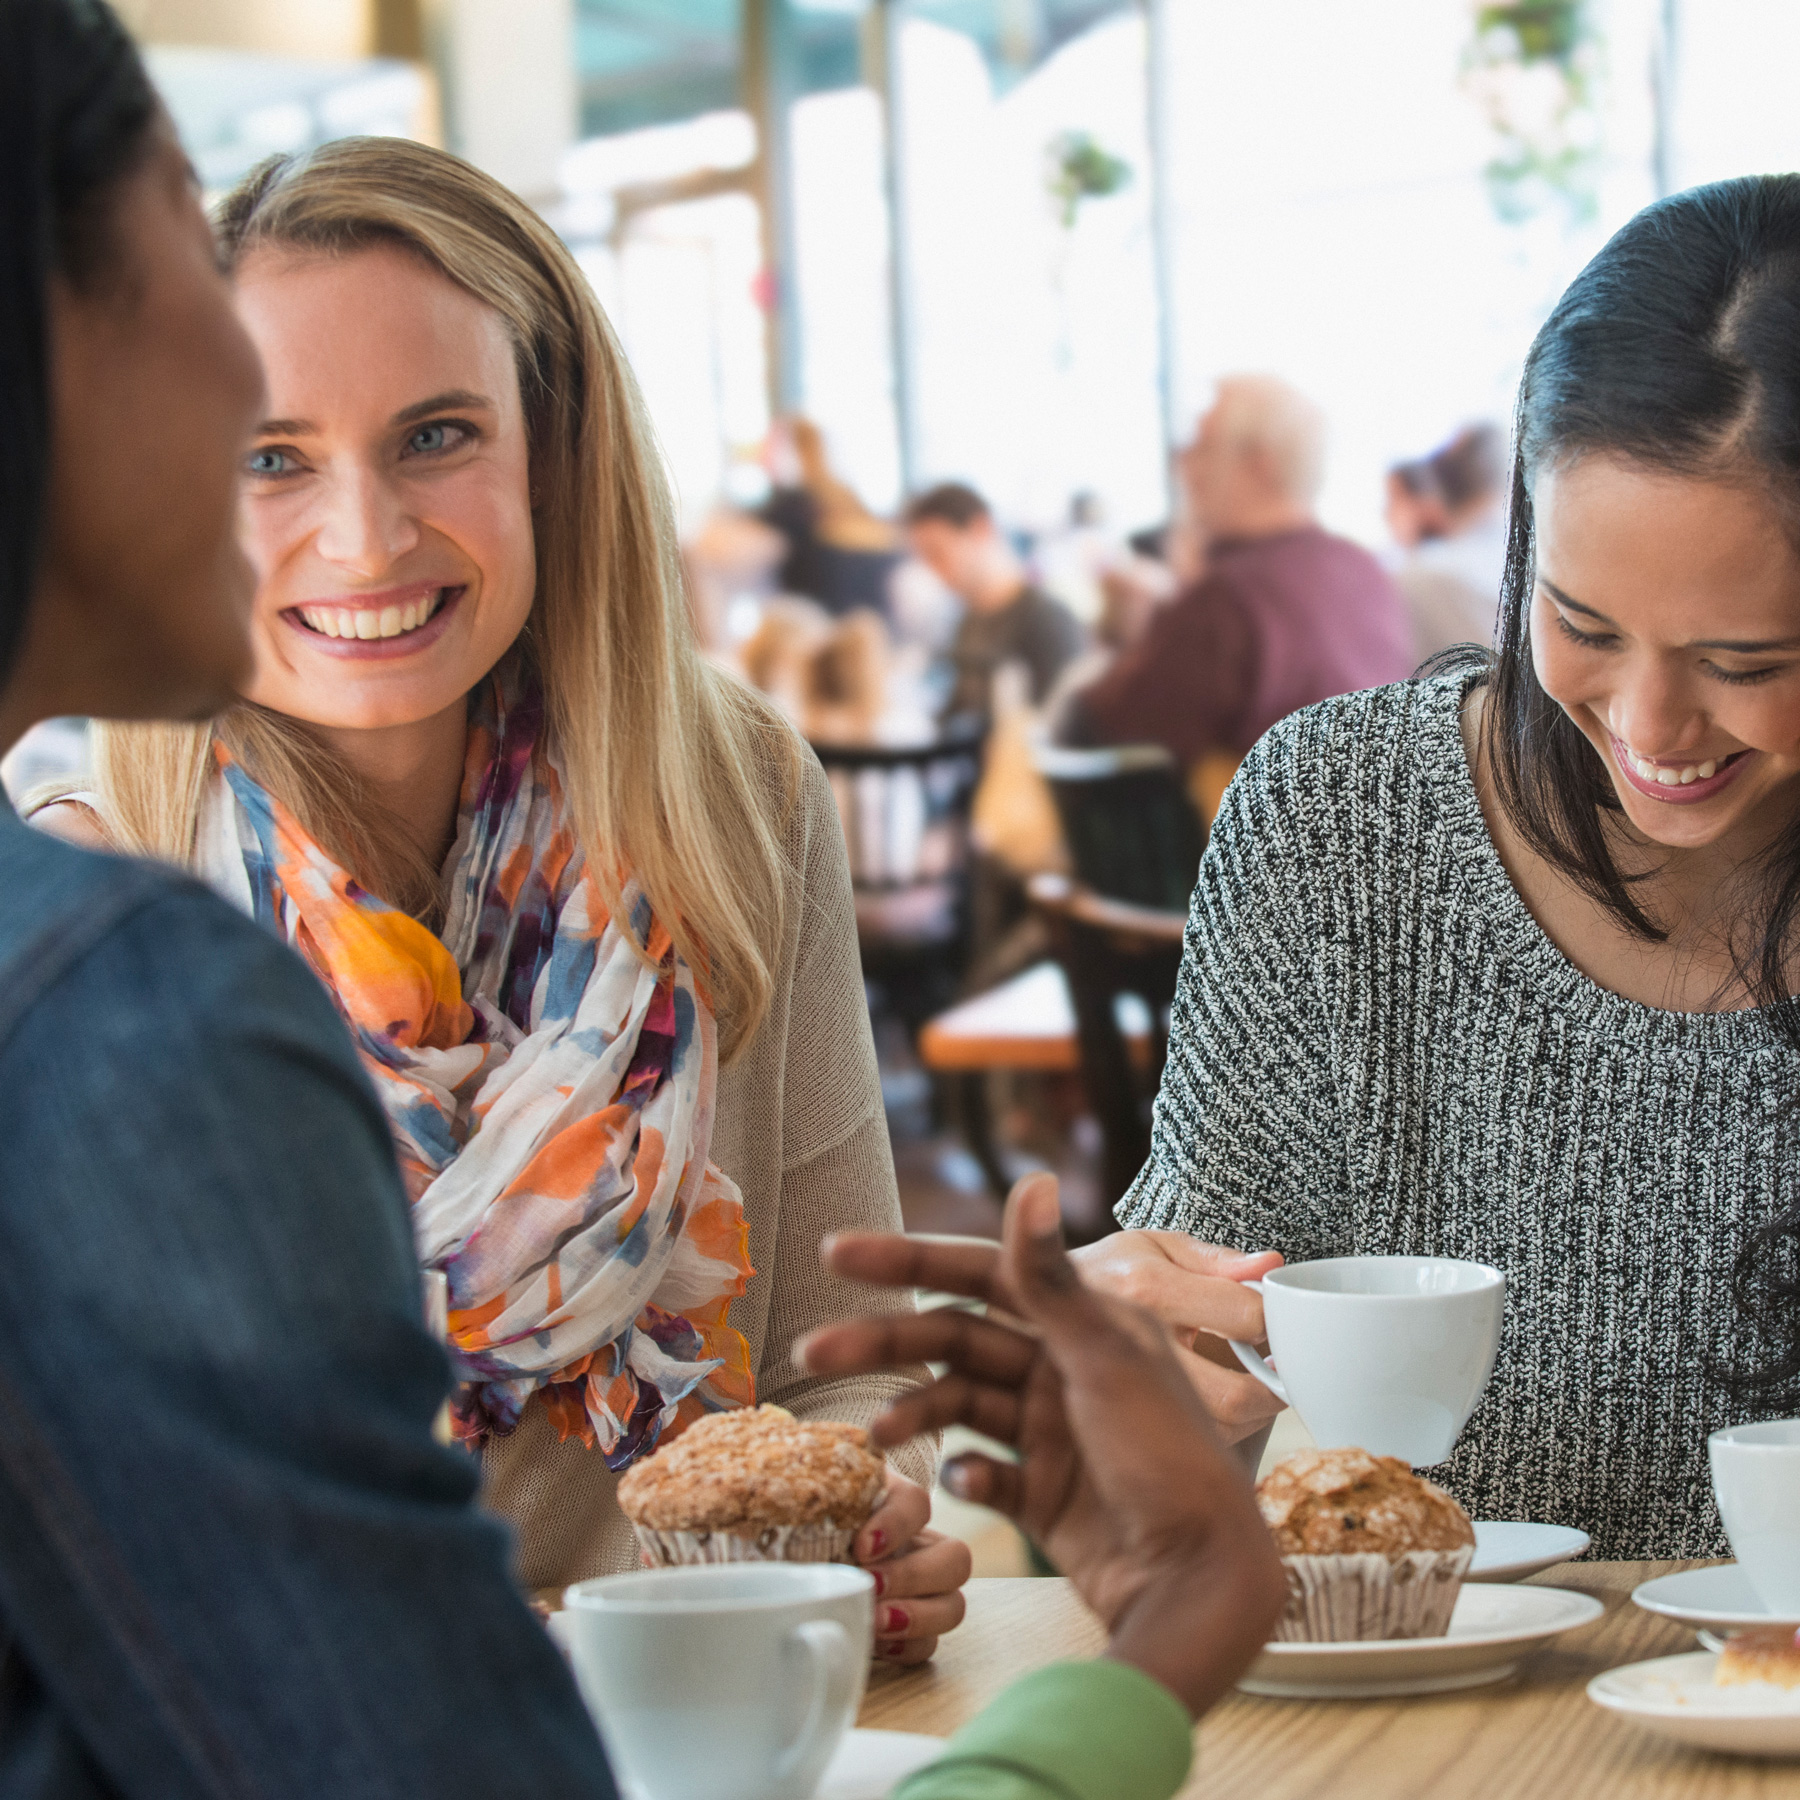 How to break bad habits (gossip), women talking and having coffee at a restaurant